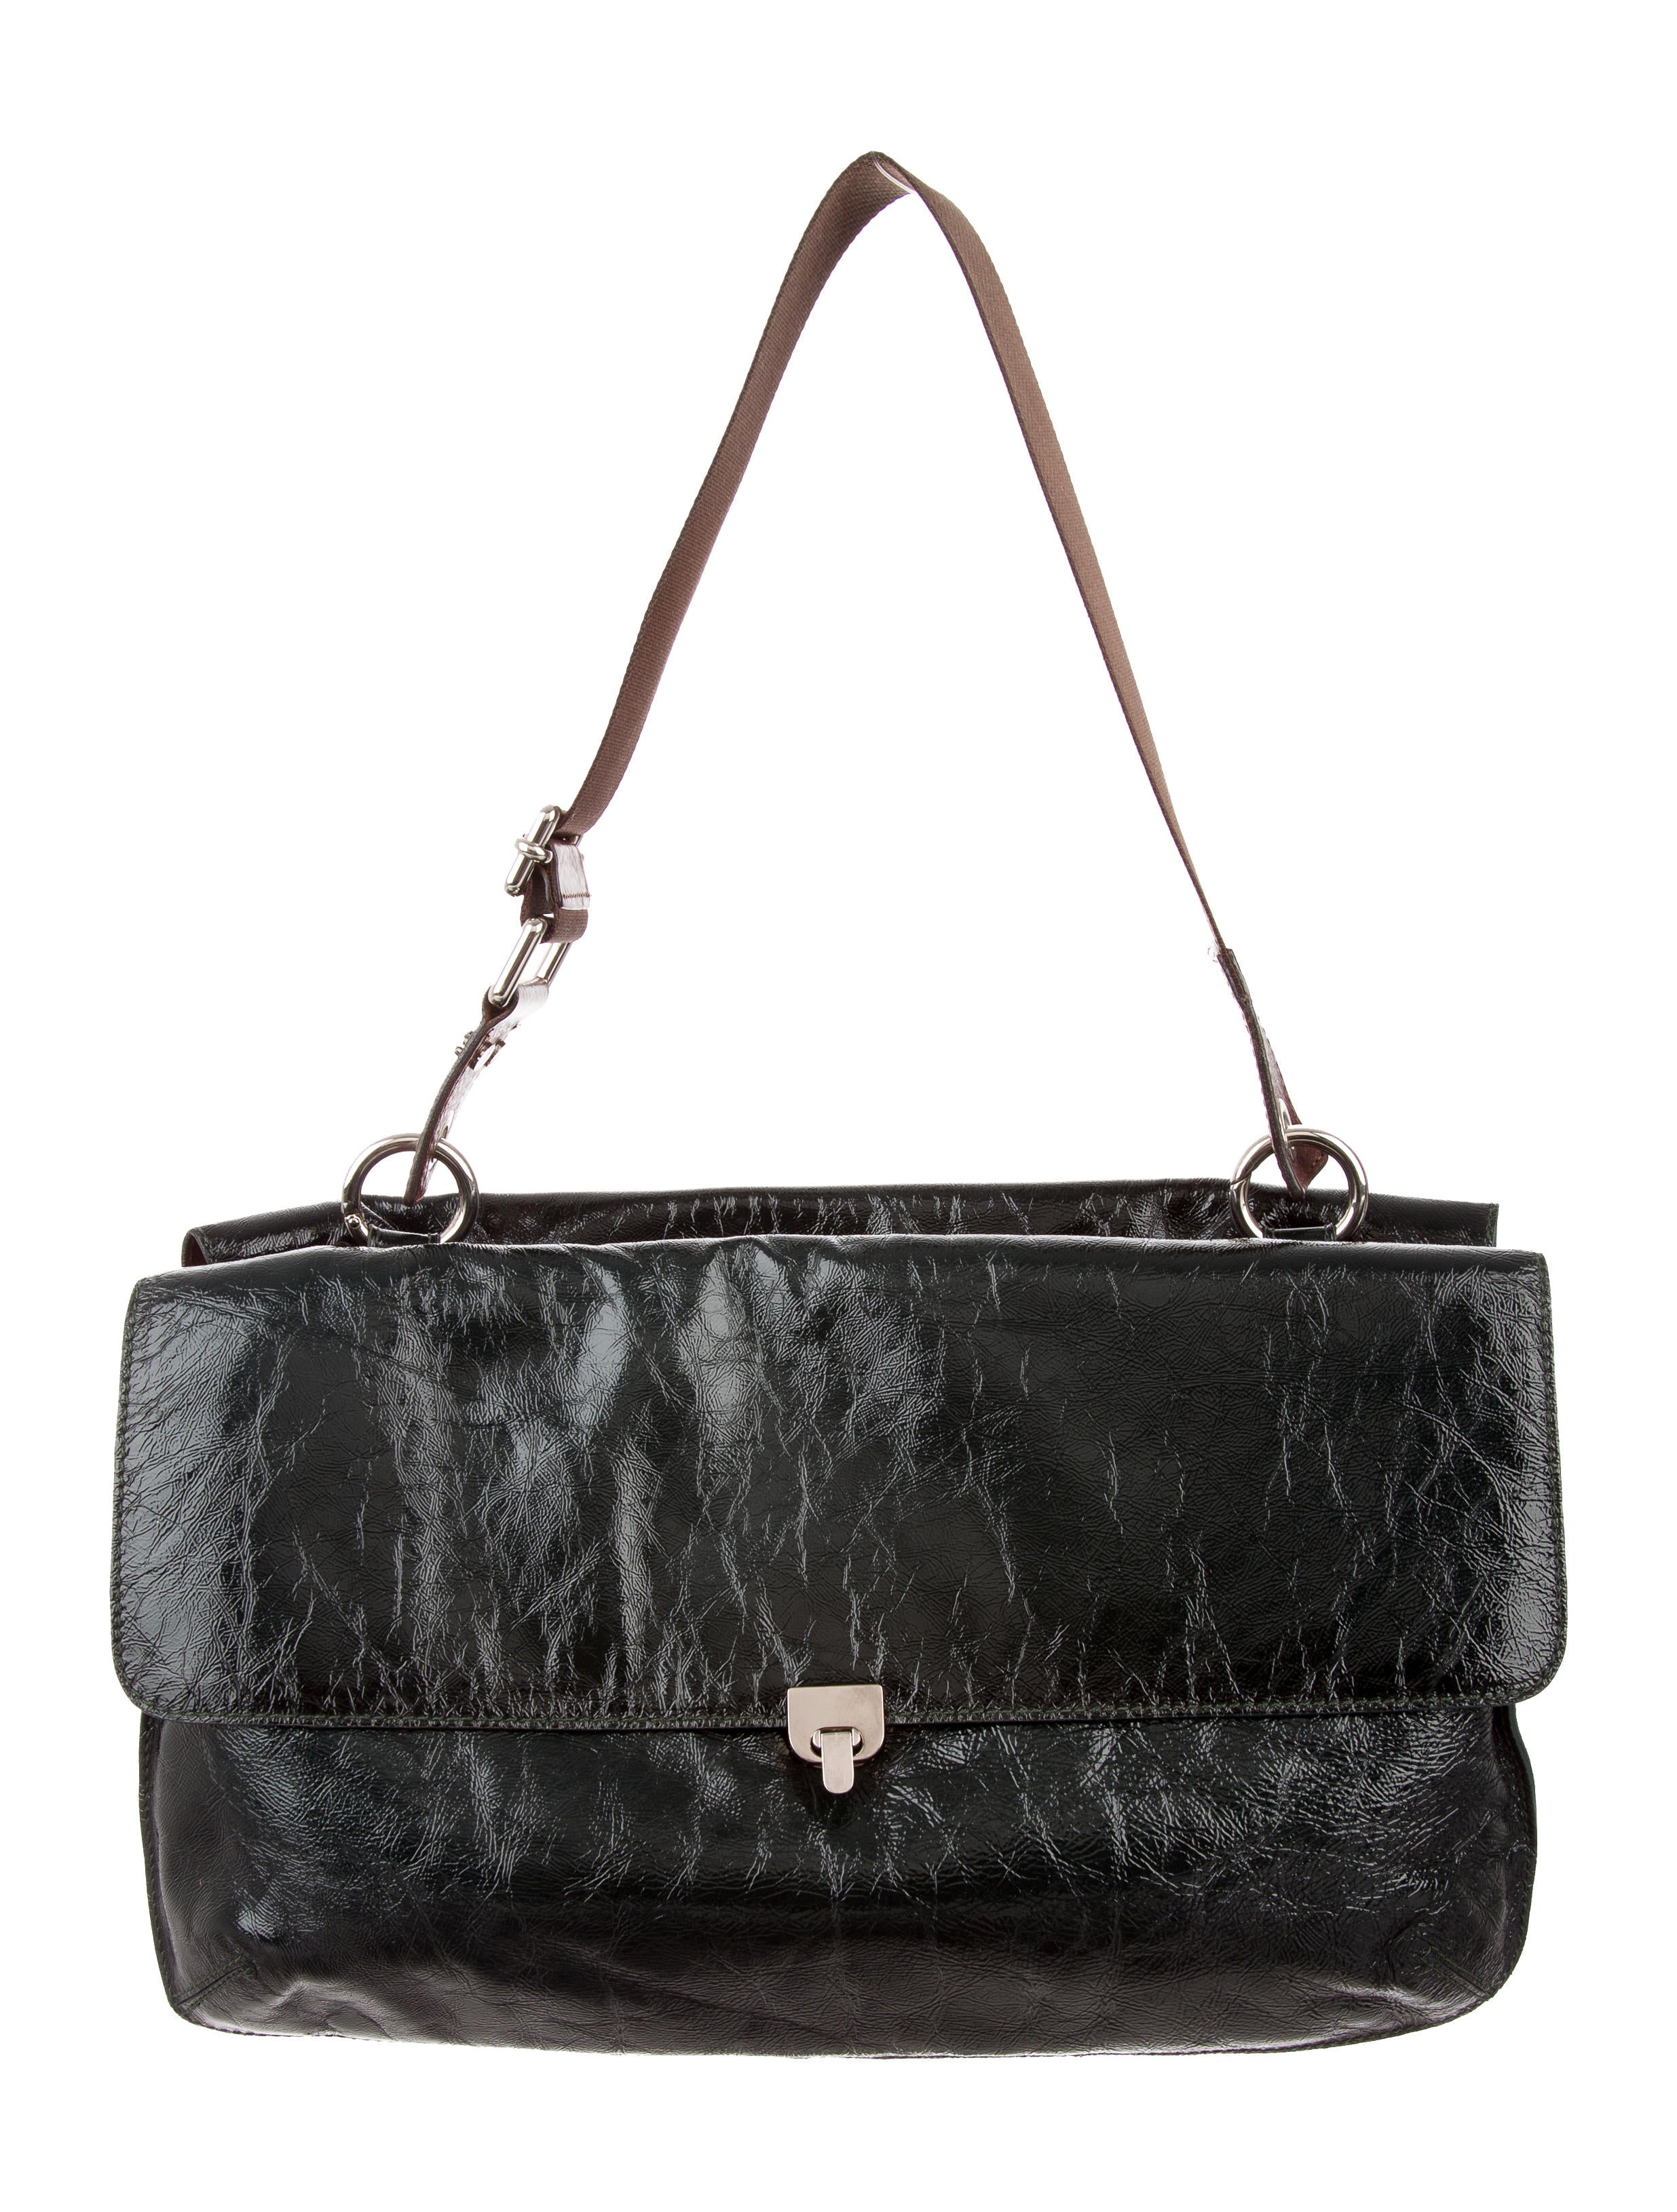 95c61d560ebe Marni Patent Leather Shoulder Bag - Handbags - MAN61252 | The RealReal